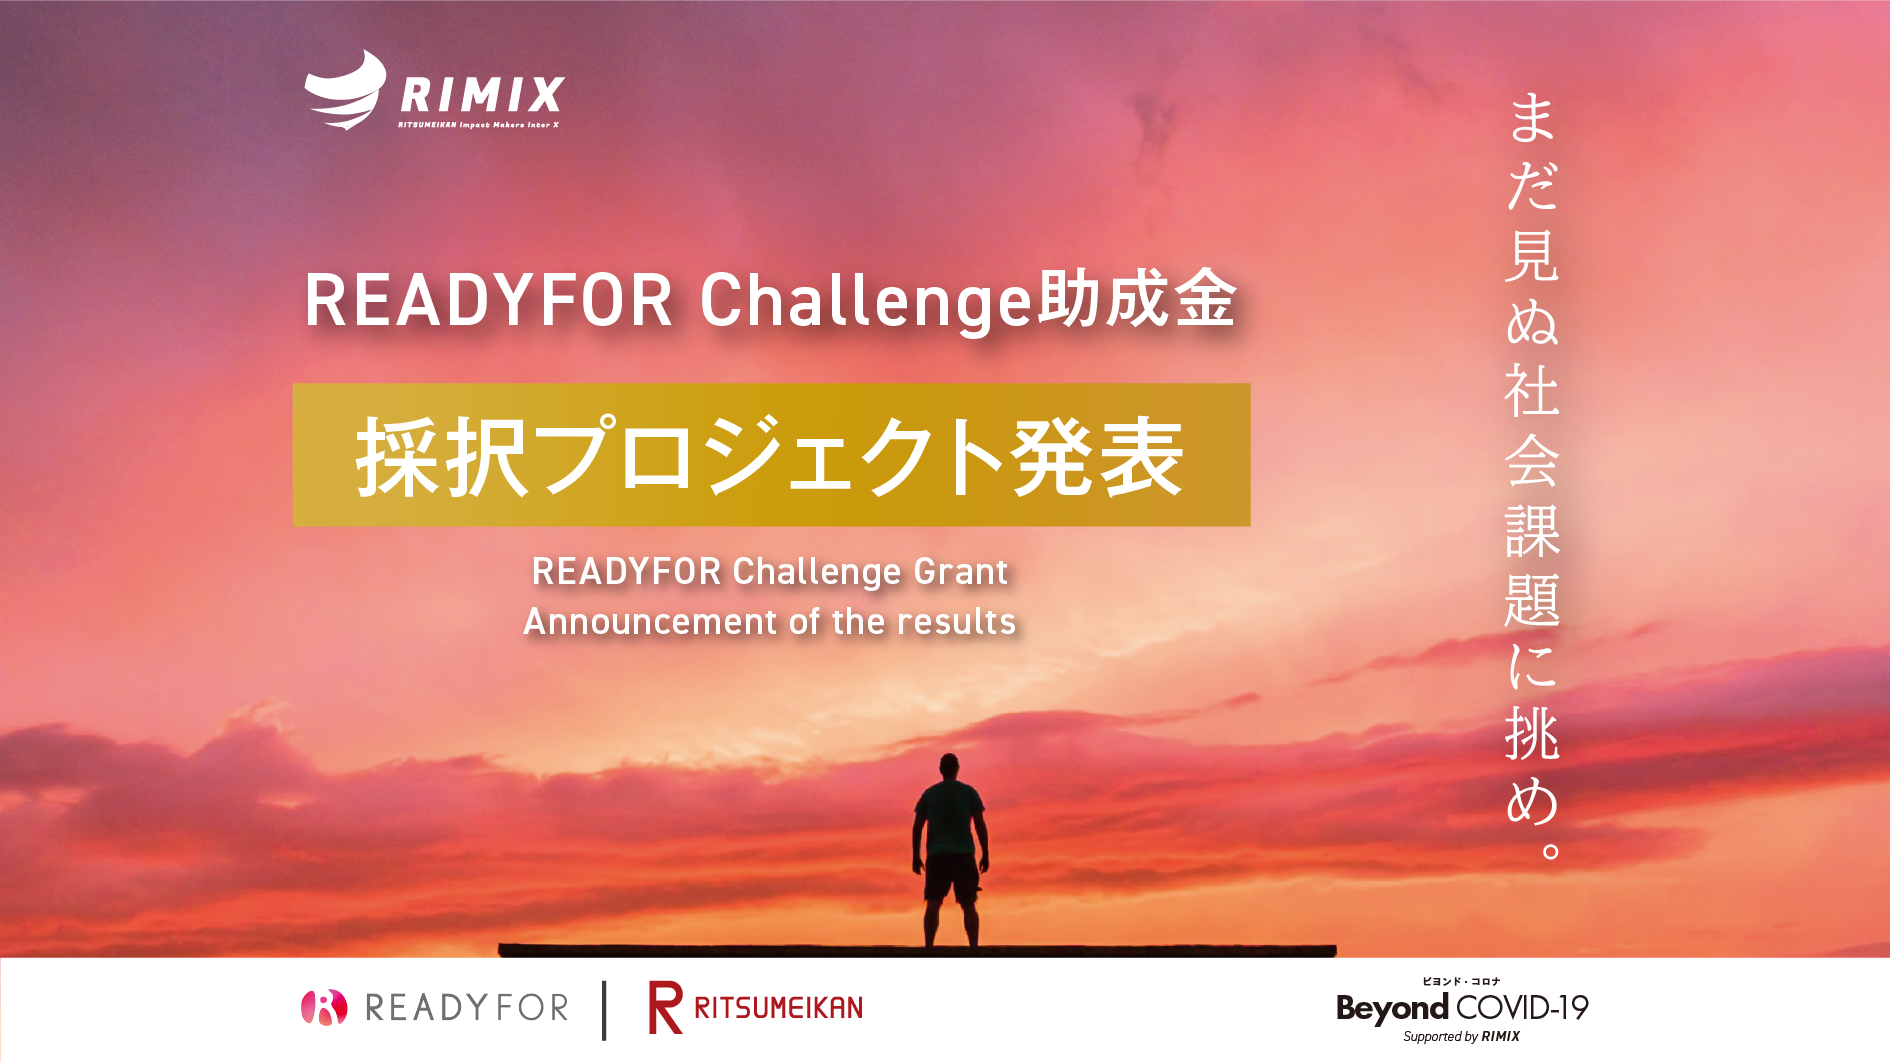 READYFOR Challenge助成金 採択プロジェクト発表 – READYFOR Challenge Grant Announcement of the results